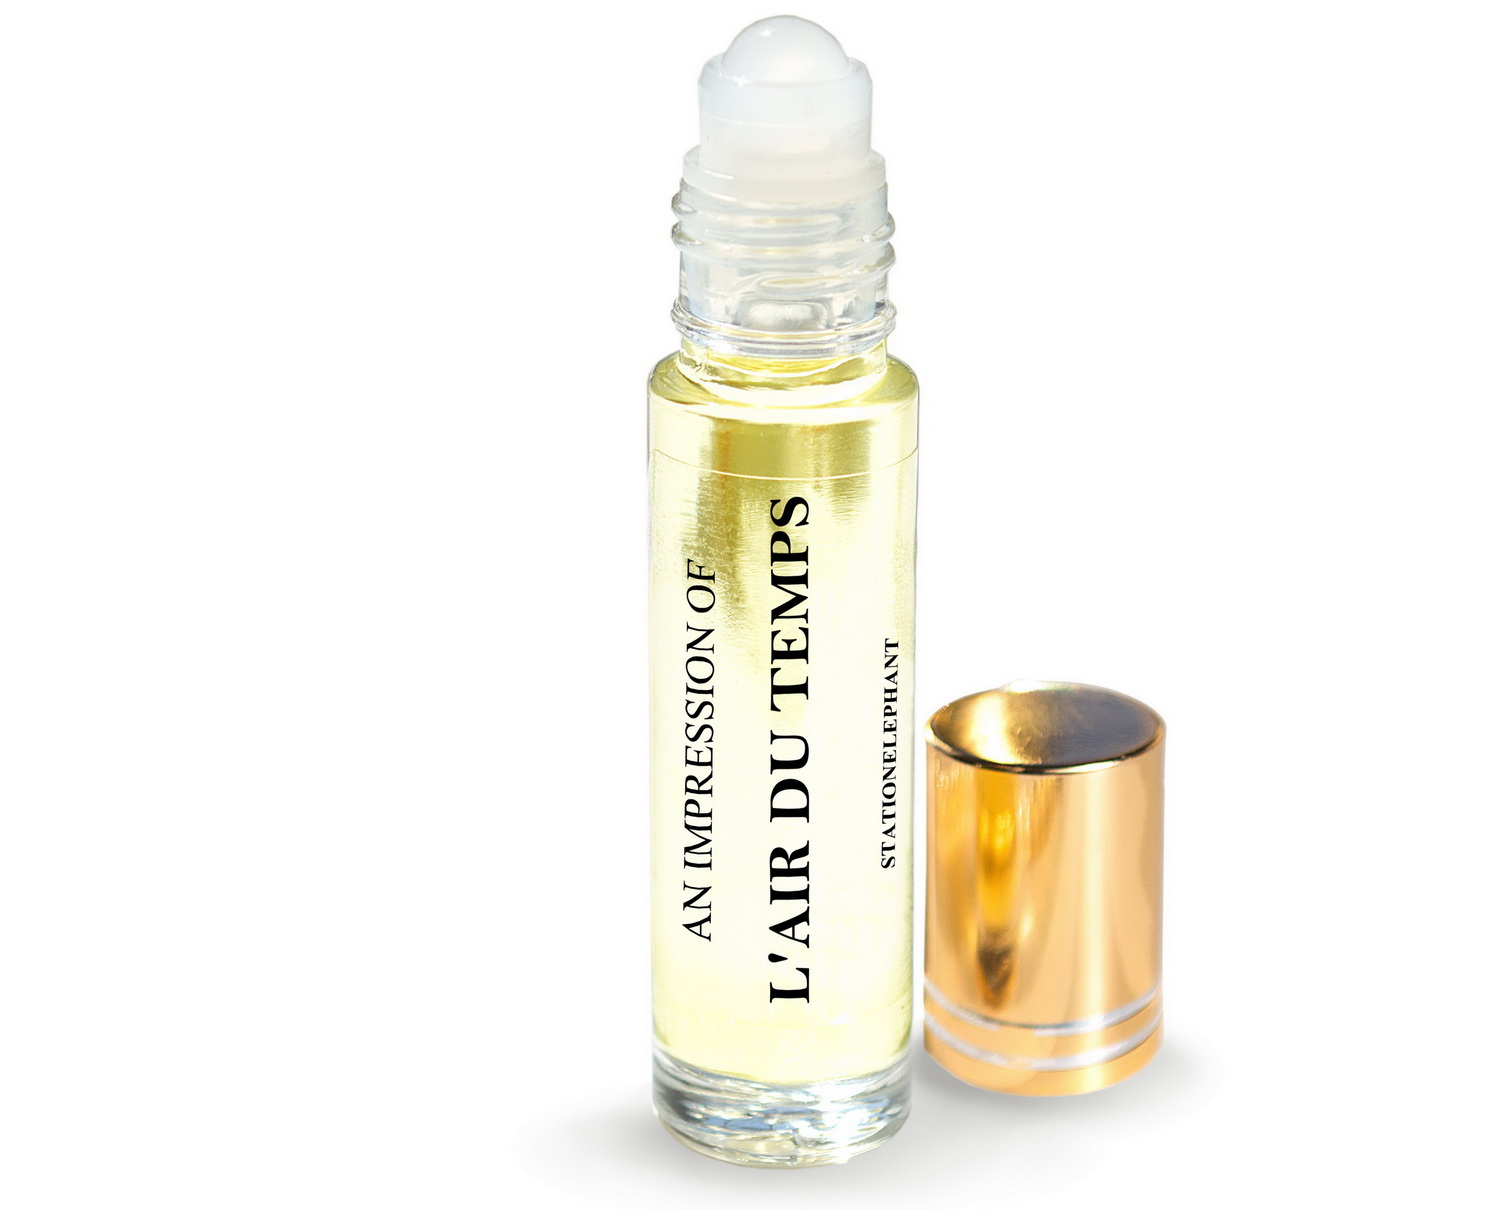 L'AIR DU TEMPS Type Vegan Perfume Oil by StationElephant